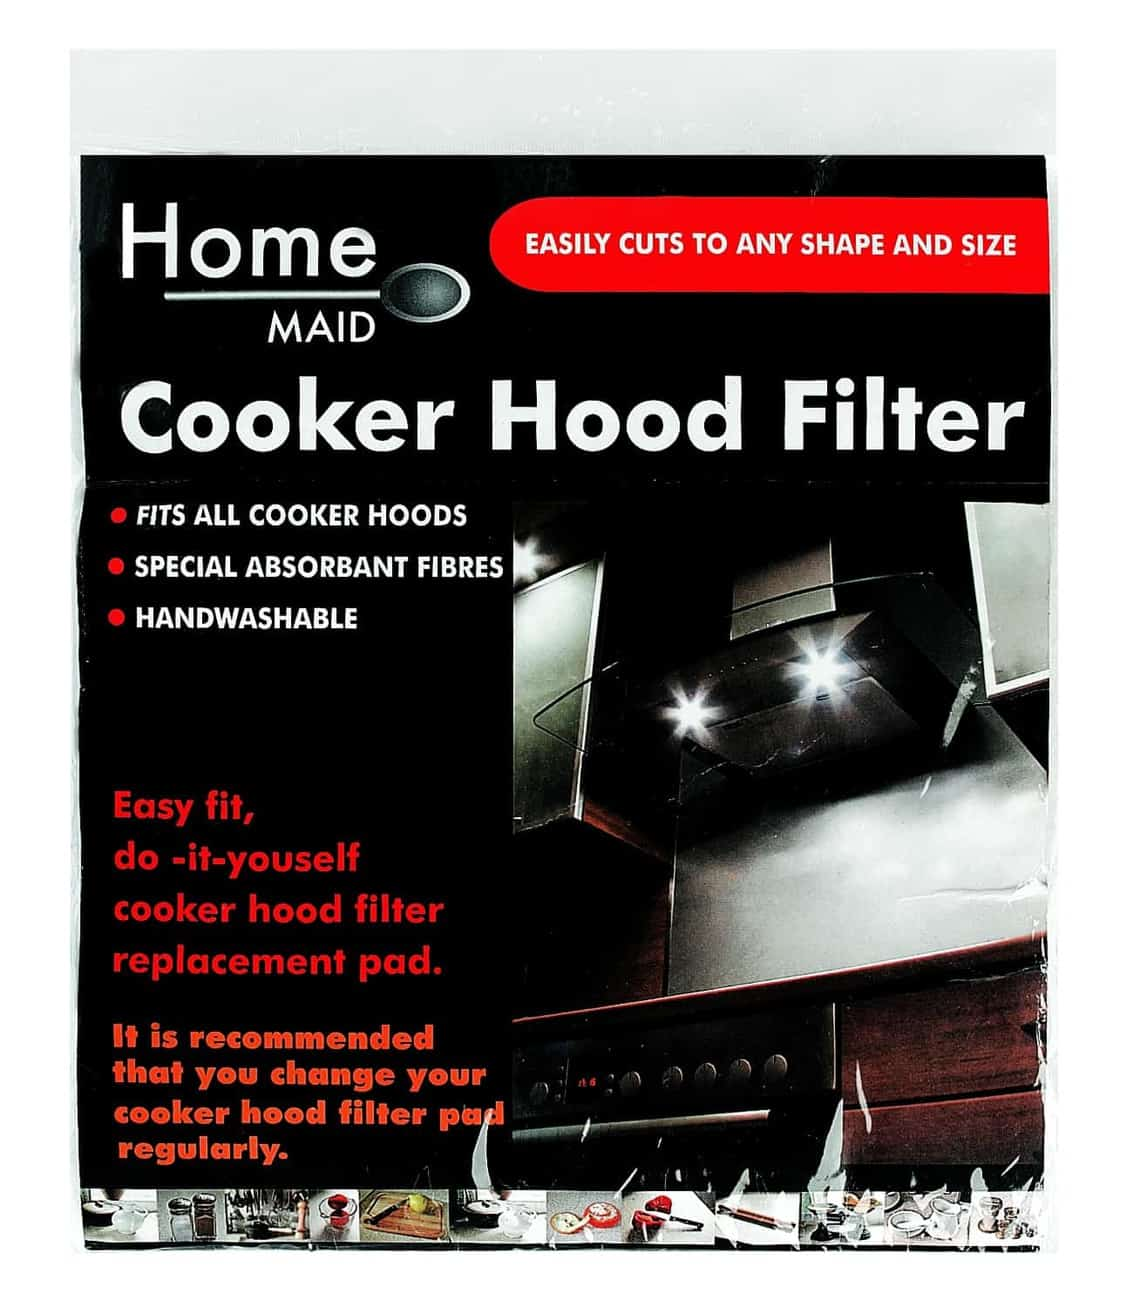 Home Maid Cooker Hood Filter